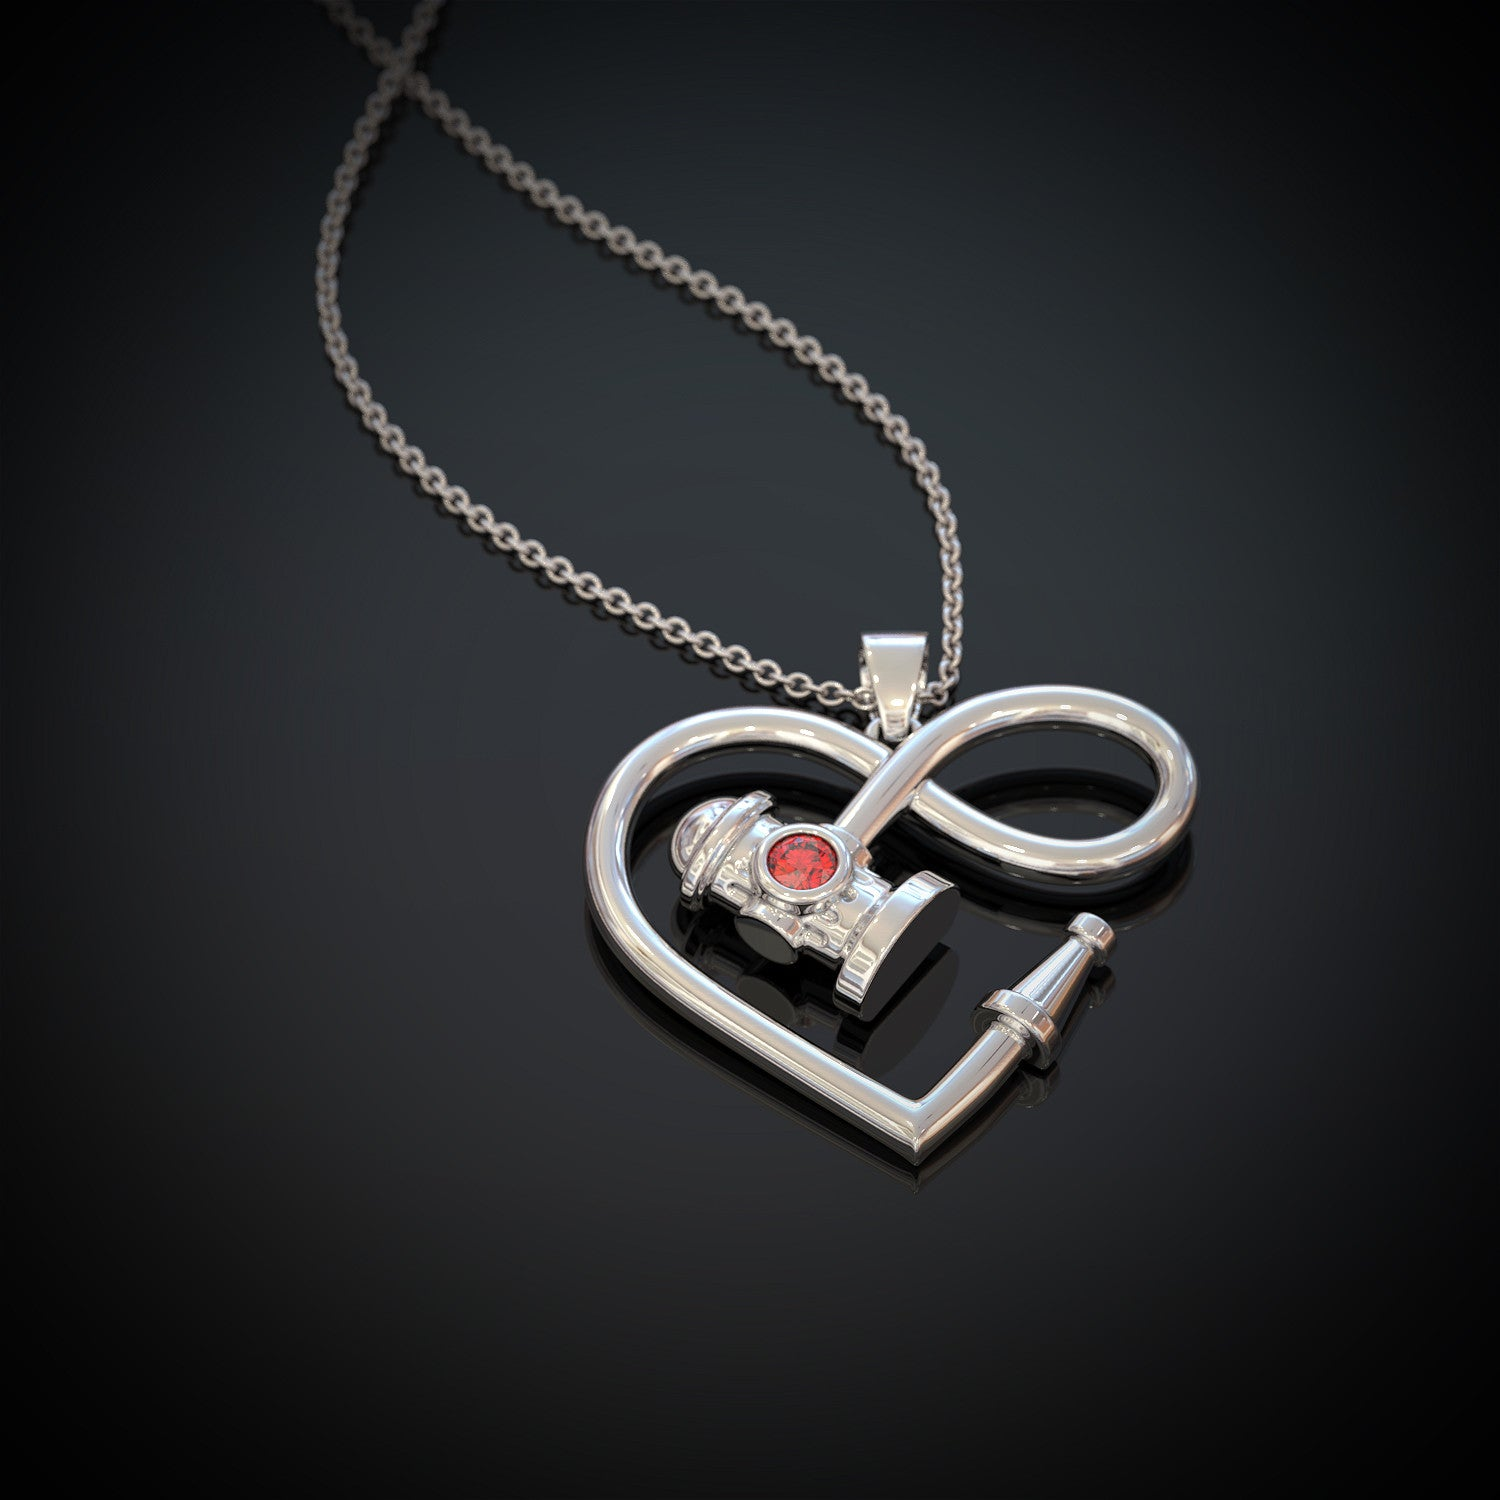 Firefighter Infinity Birthstone Necklace